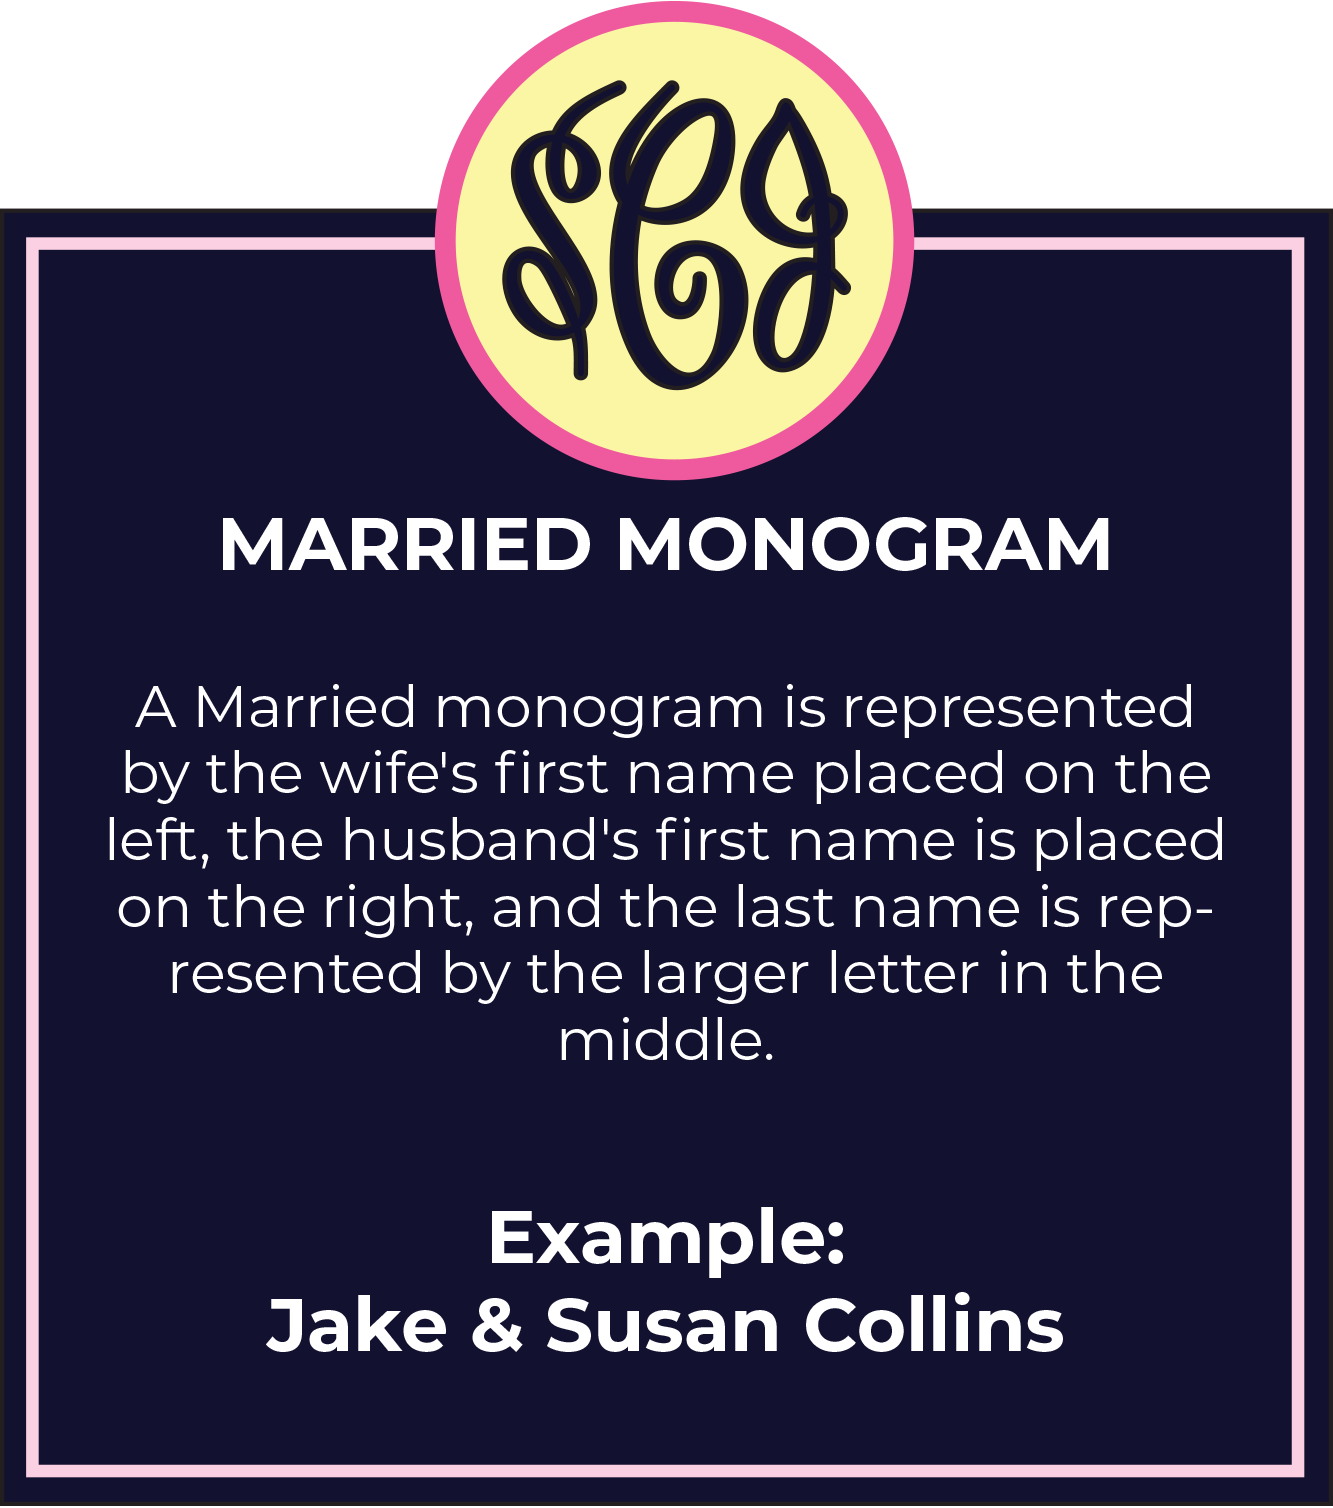 Married Monogram Etiquette